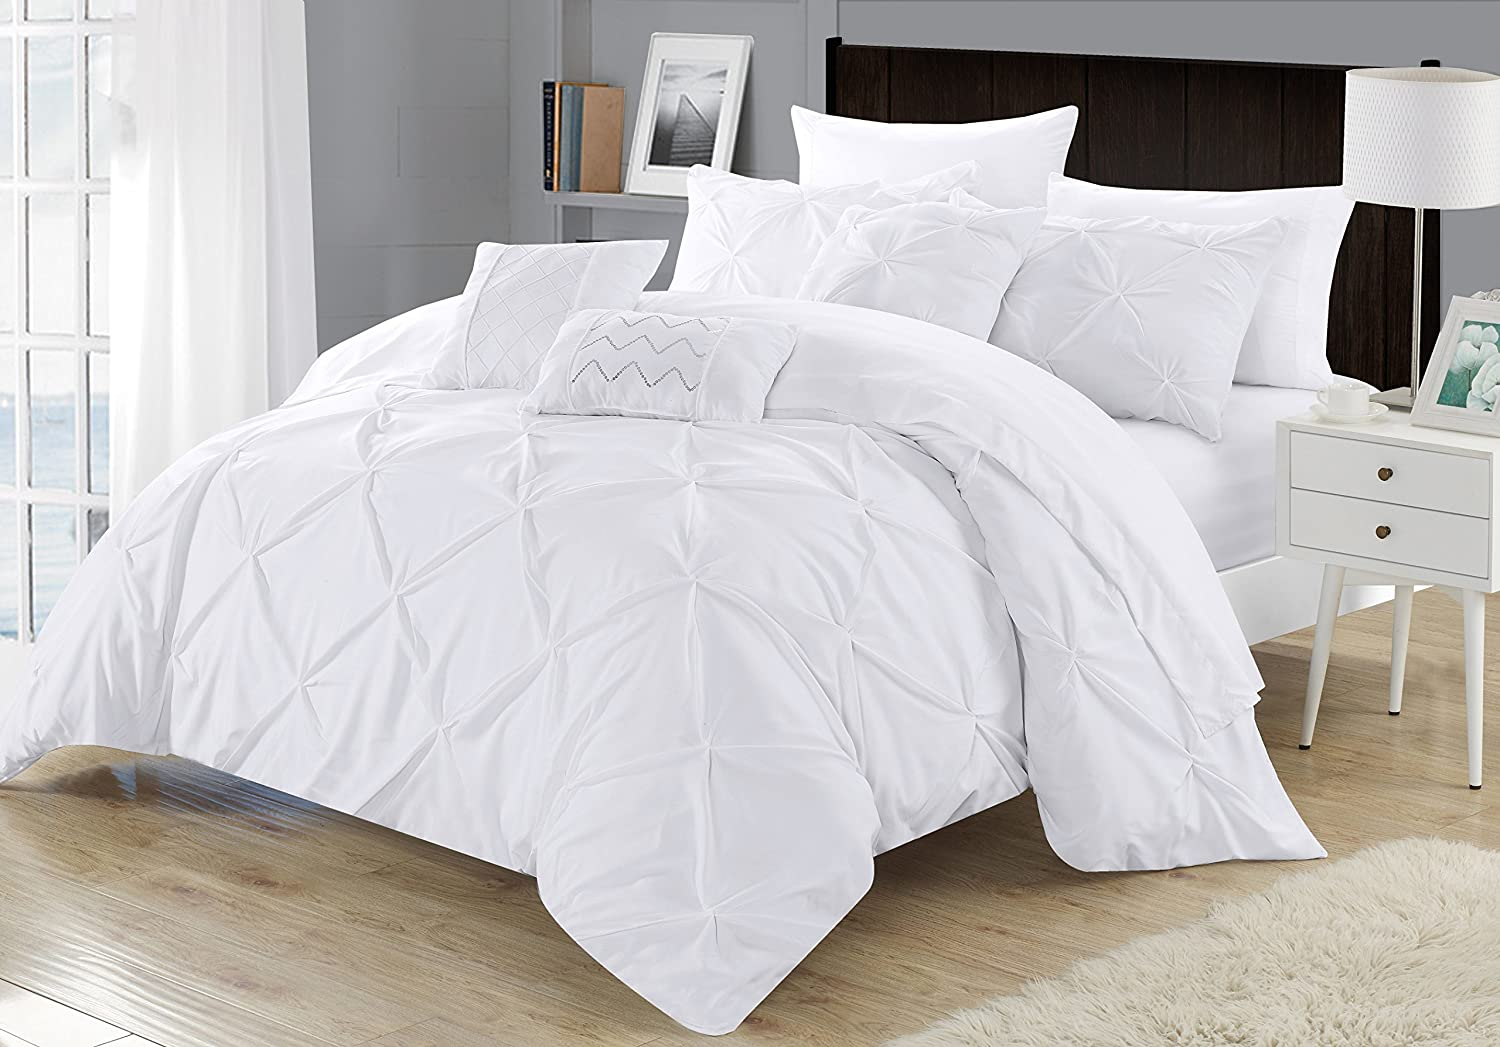 Chic Home 8 Piece Zita Pinch Pleated, Ruffled and Pleated Complete Twin Bed in a Bag Comforter Set White Sheets Set and Decorative Pillows Included